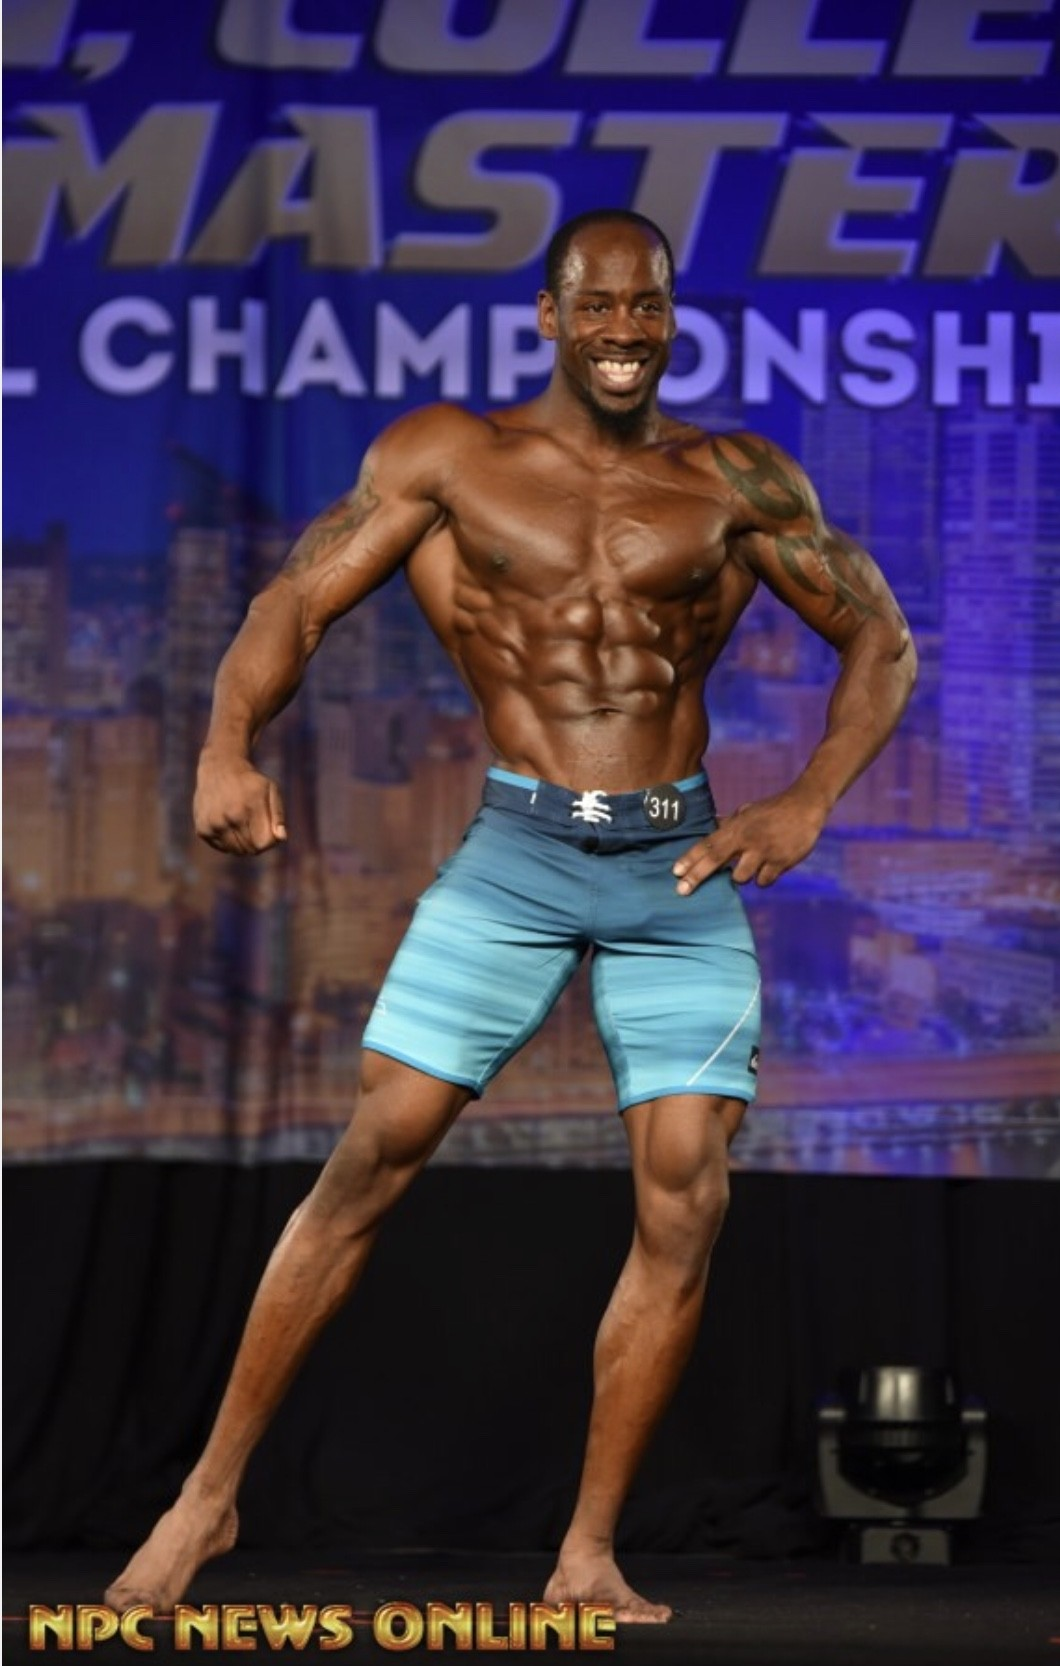 Derick posing at a competition